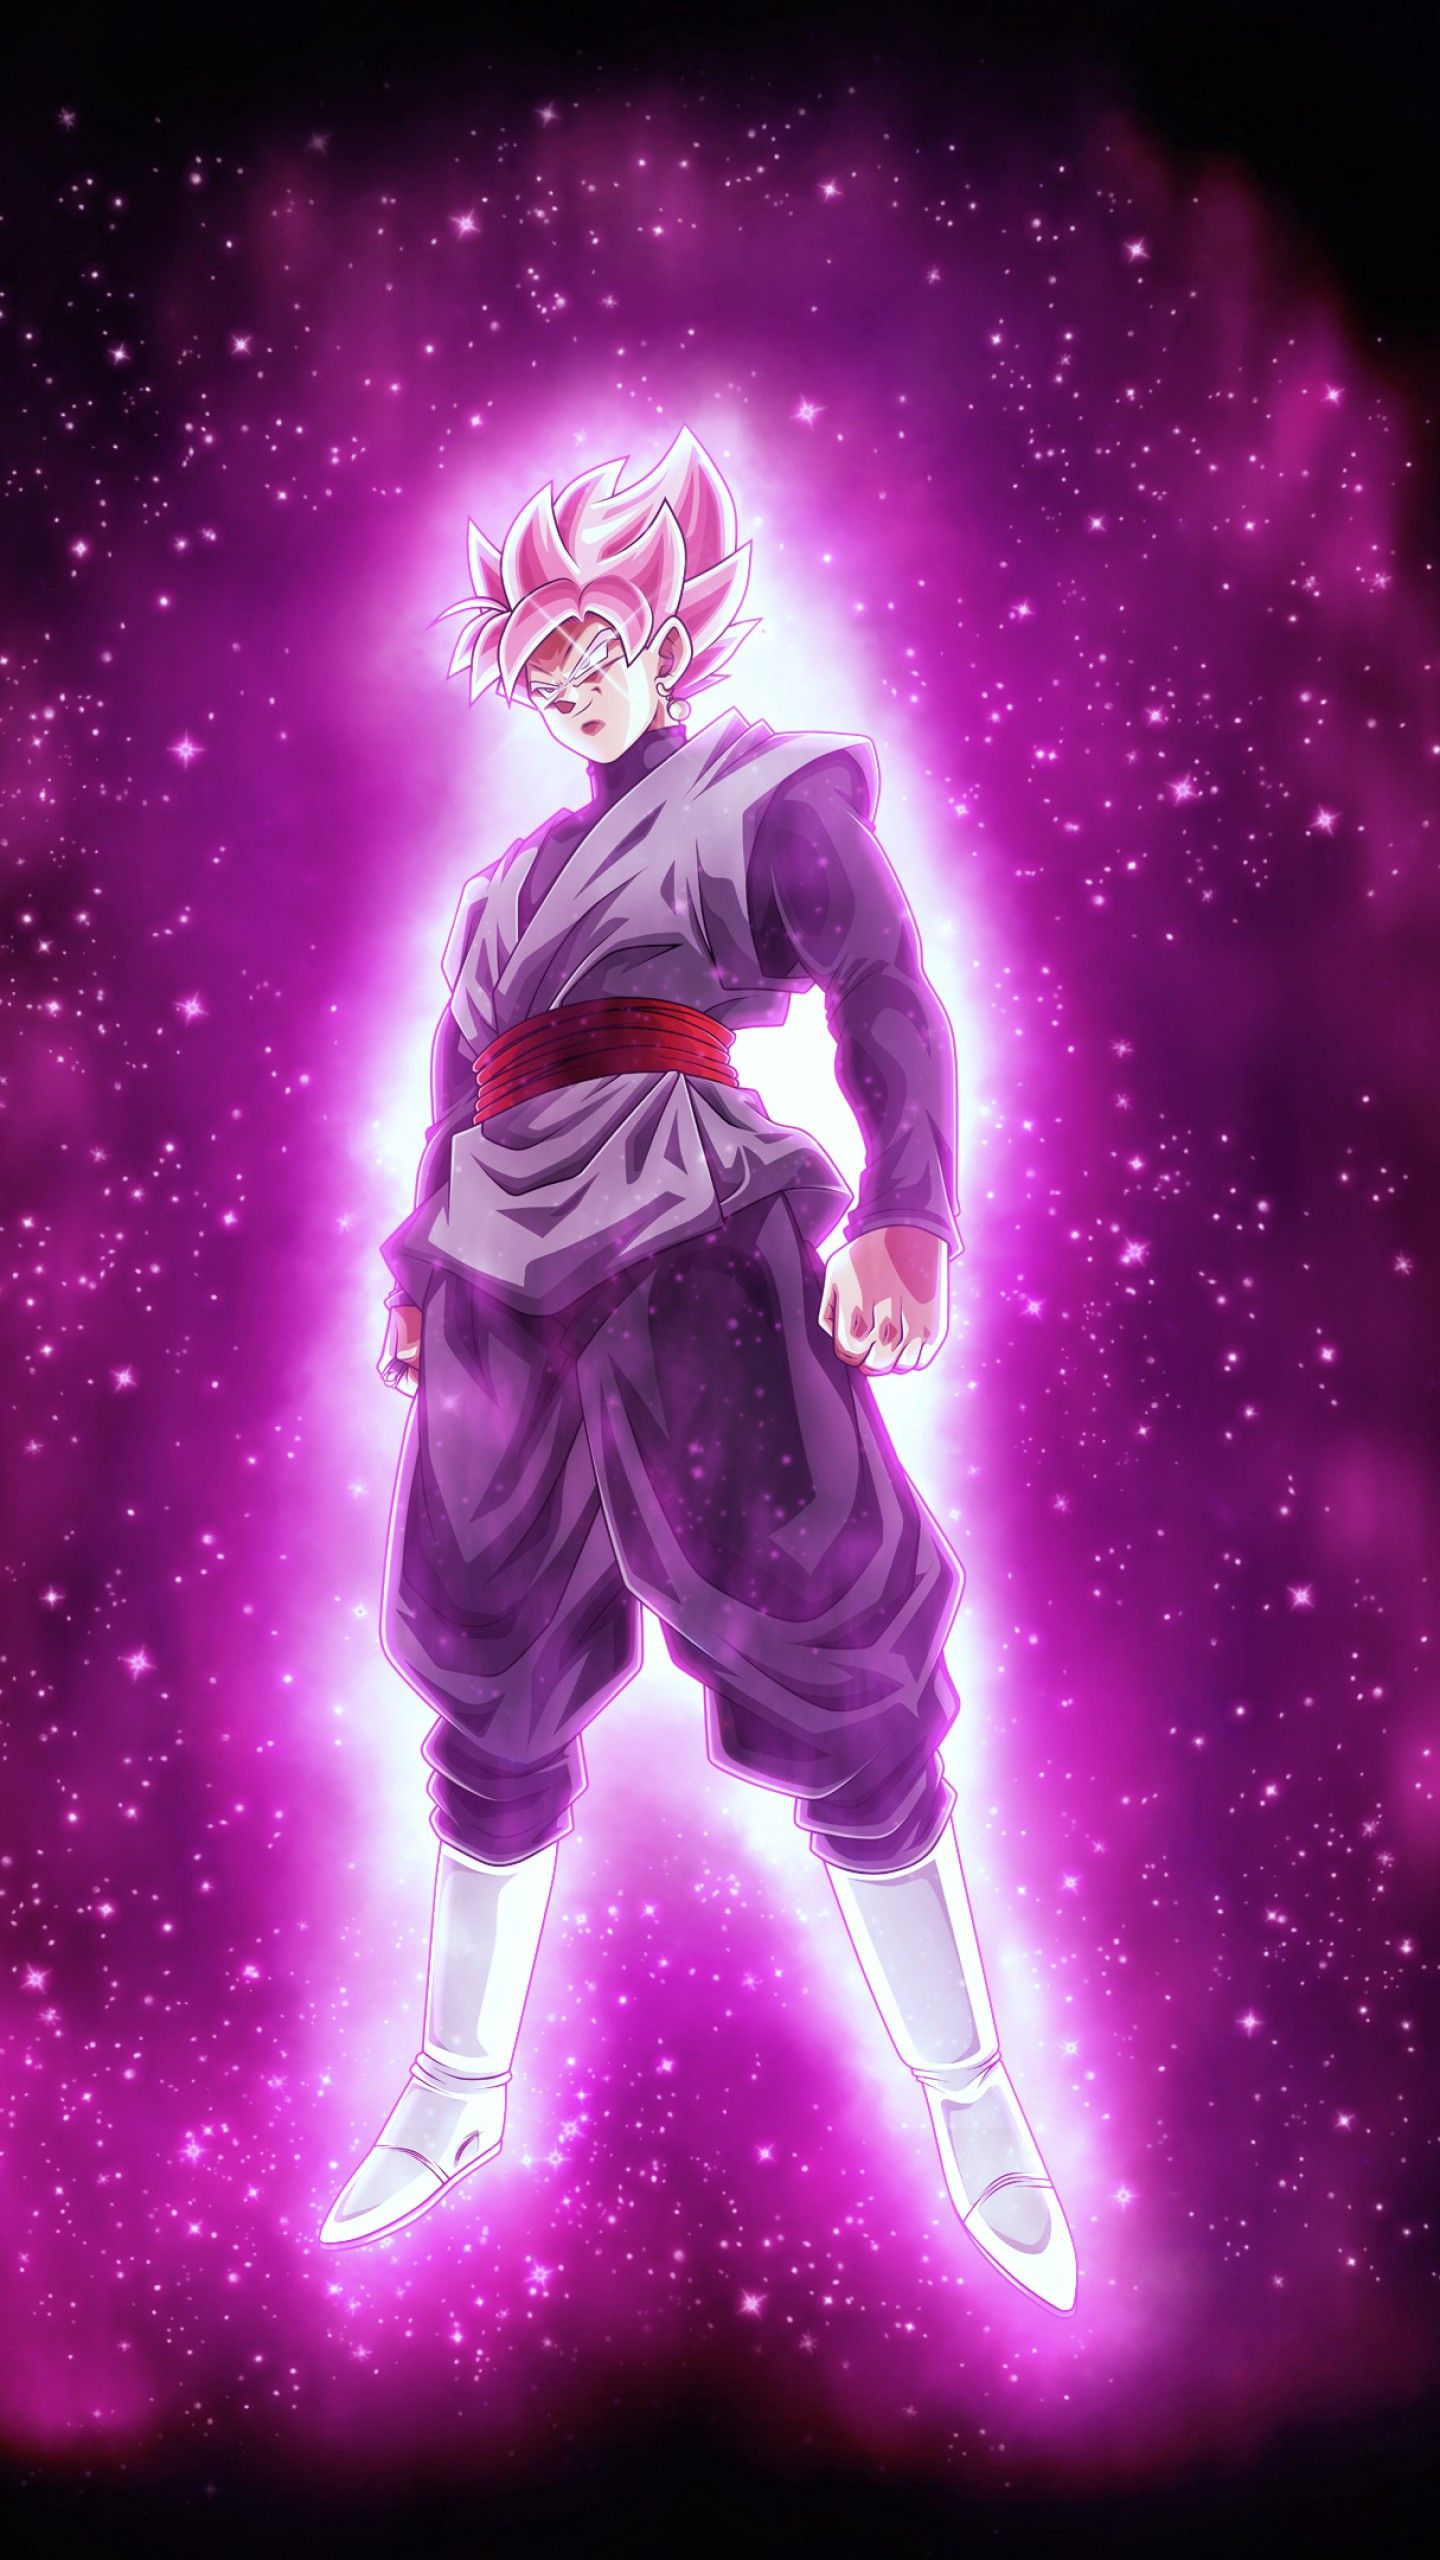 Goku And Goku Black Wallpapers Top Free Goku And Goku Black Backgrounds Wallpaperaccess